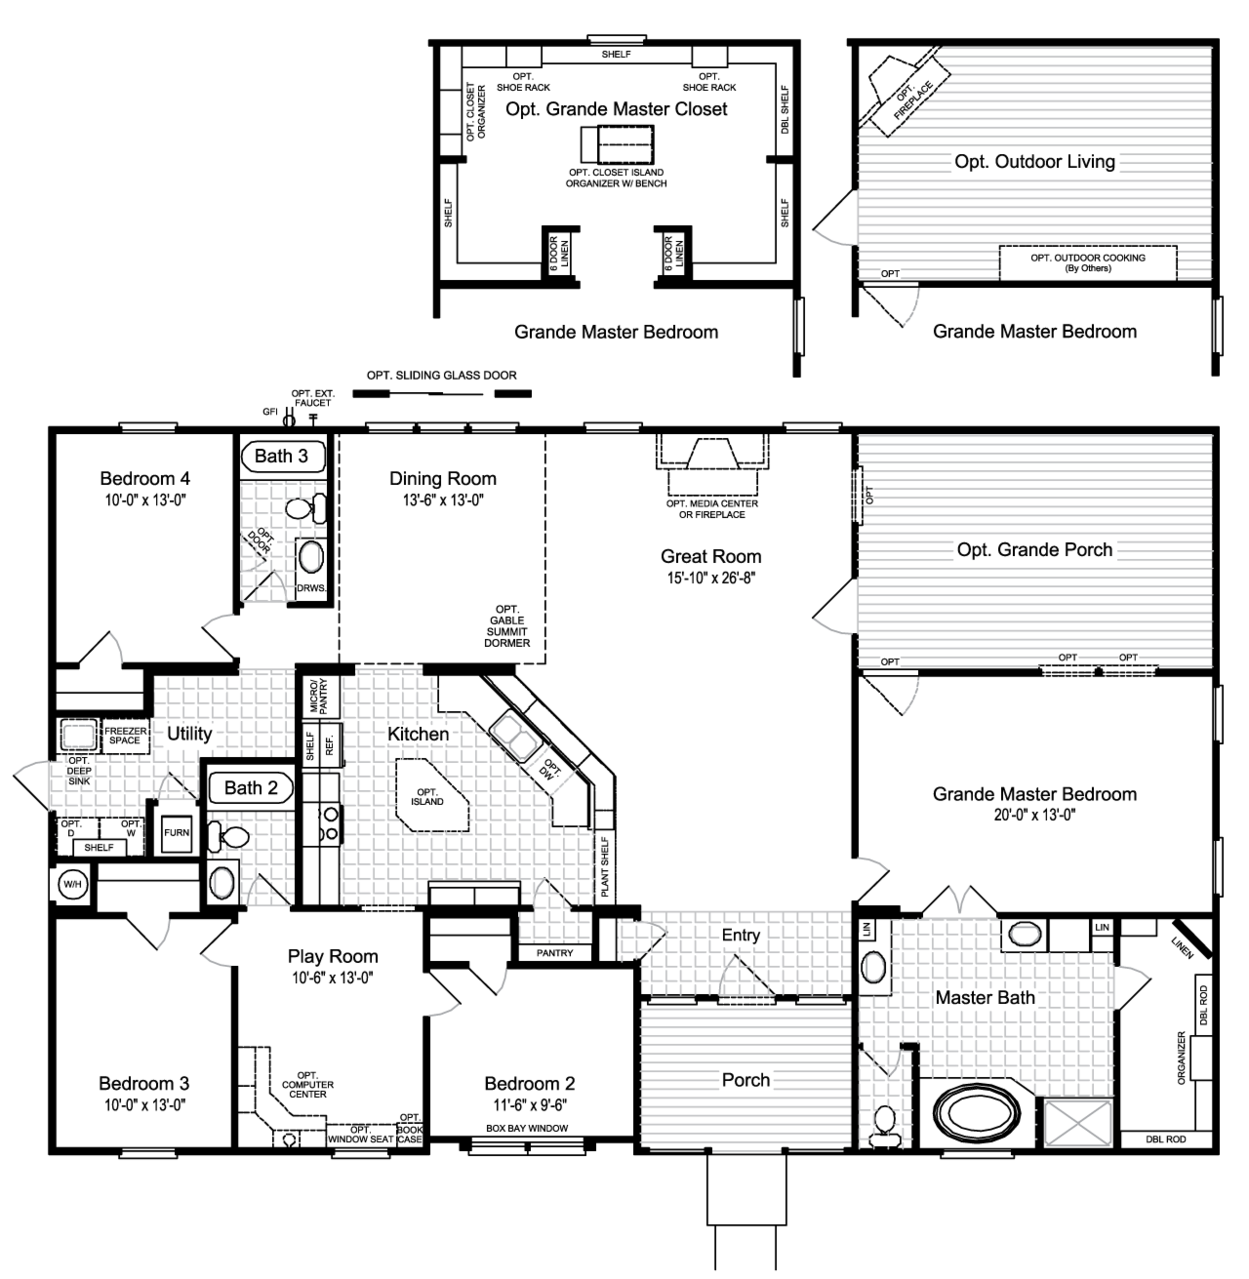 View The Hacienda Ii Floor Plan For A 2580 Sq Ft Palm